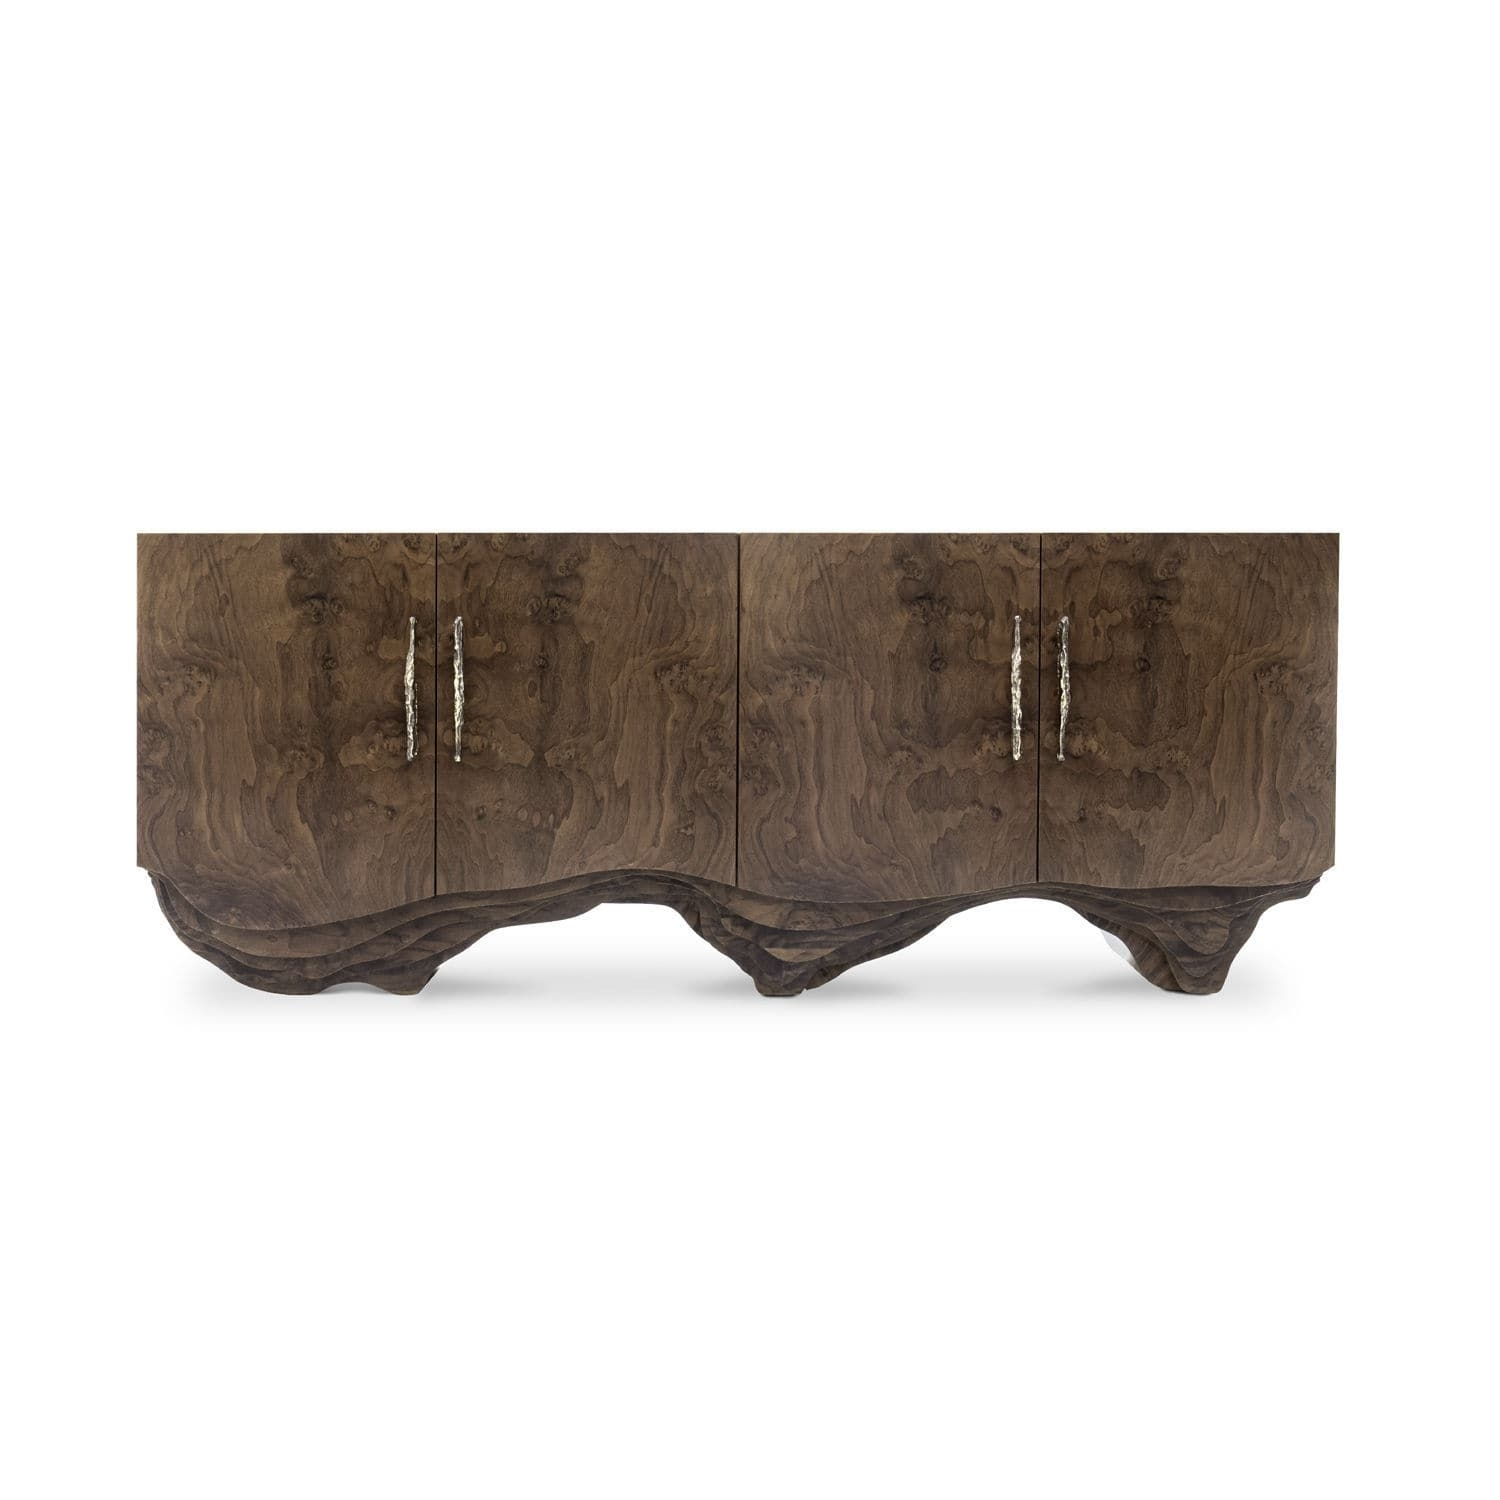 Contemporary Sideboard / Walnut / Wood Veneer / Polished Brass with regard to Aged Brass Sideboards (Image 6 of 30)